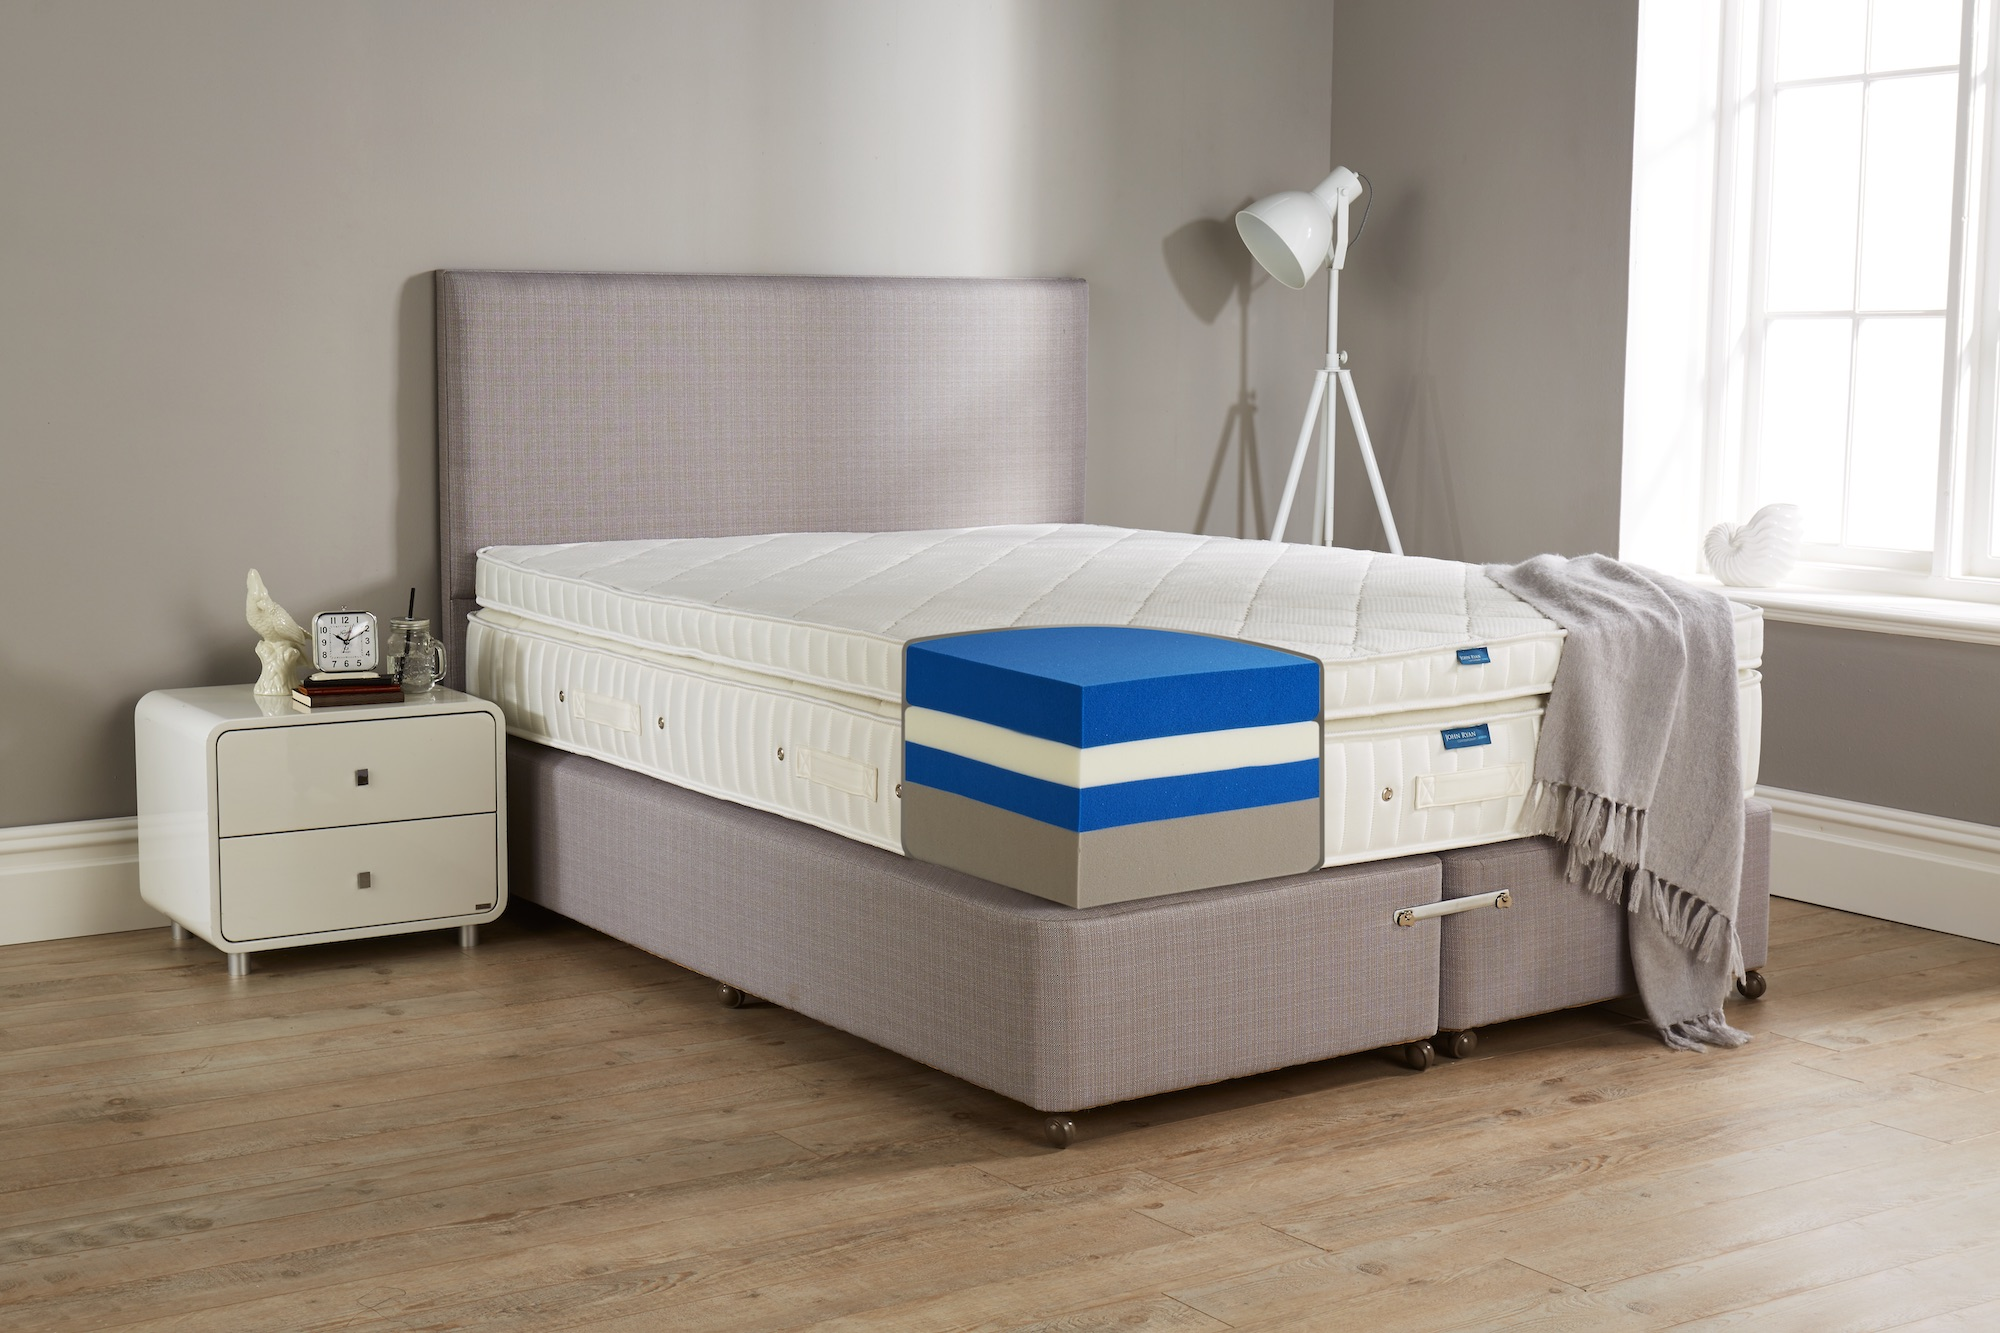 king ii plush mattress performance height plushking threshold hybrid item trim width copper t sealy products